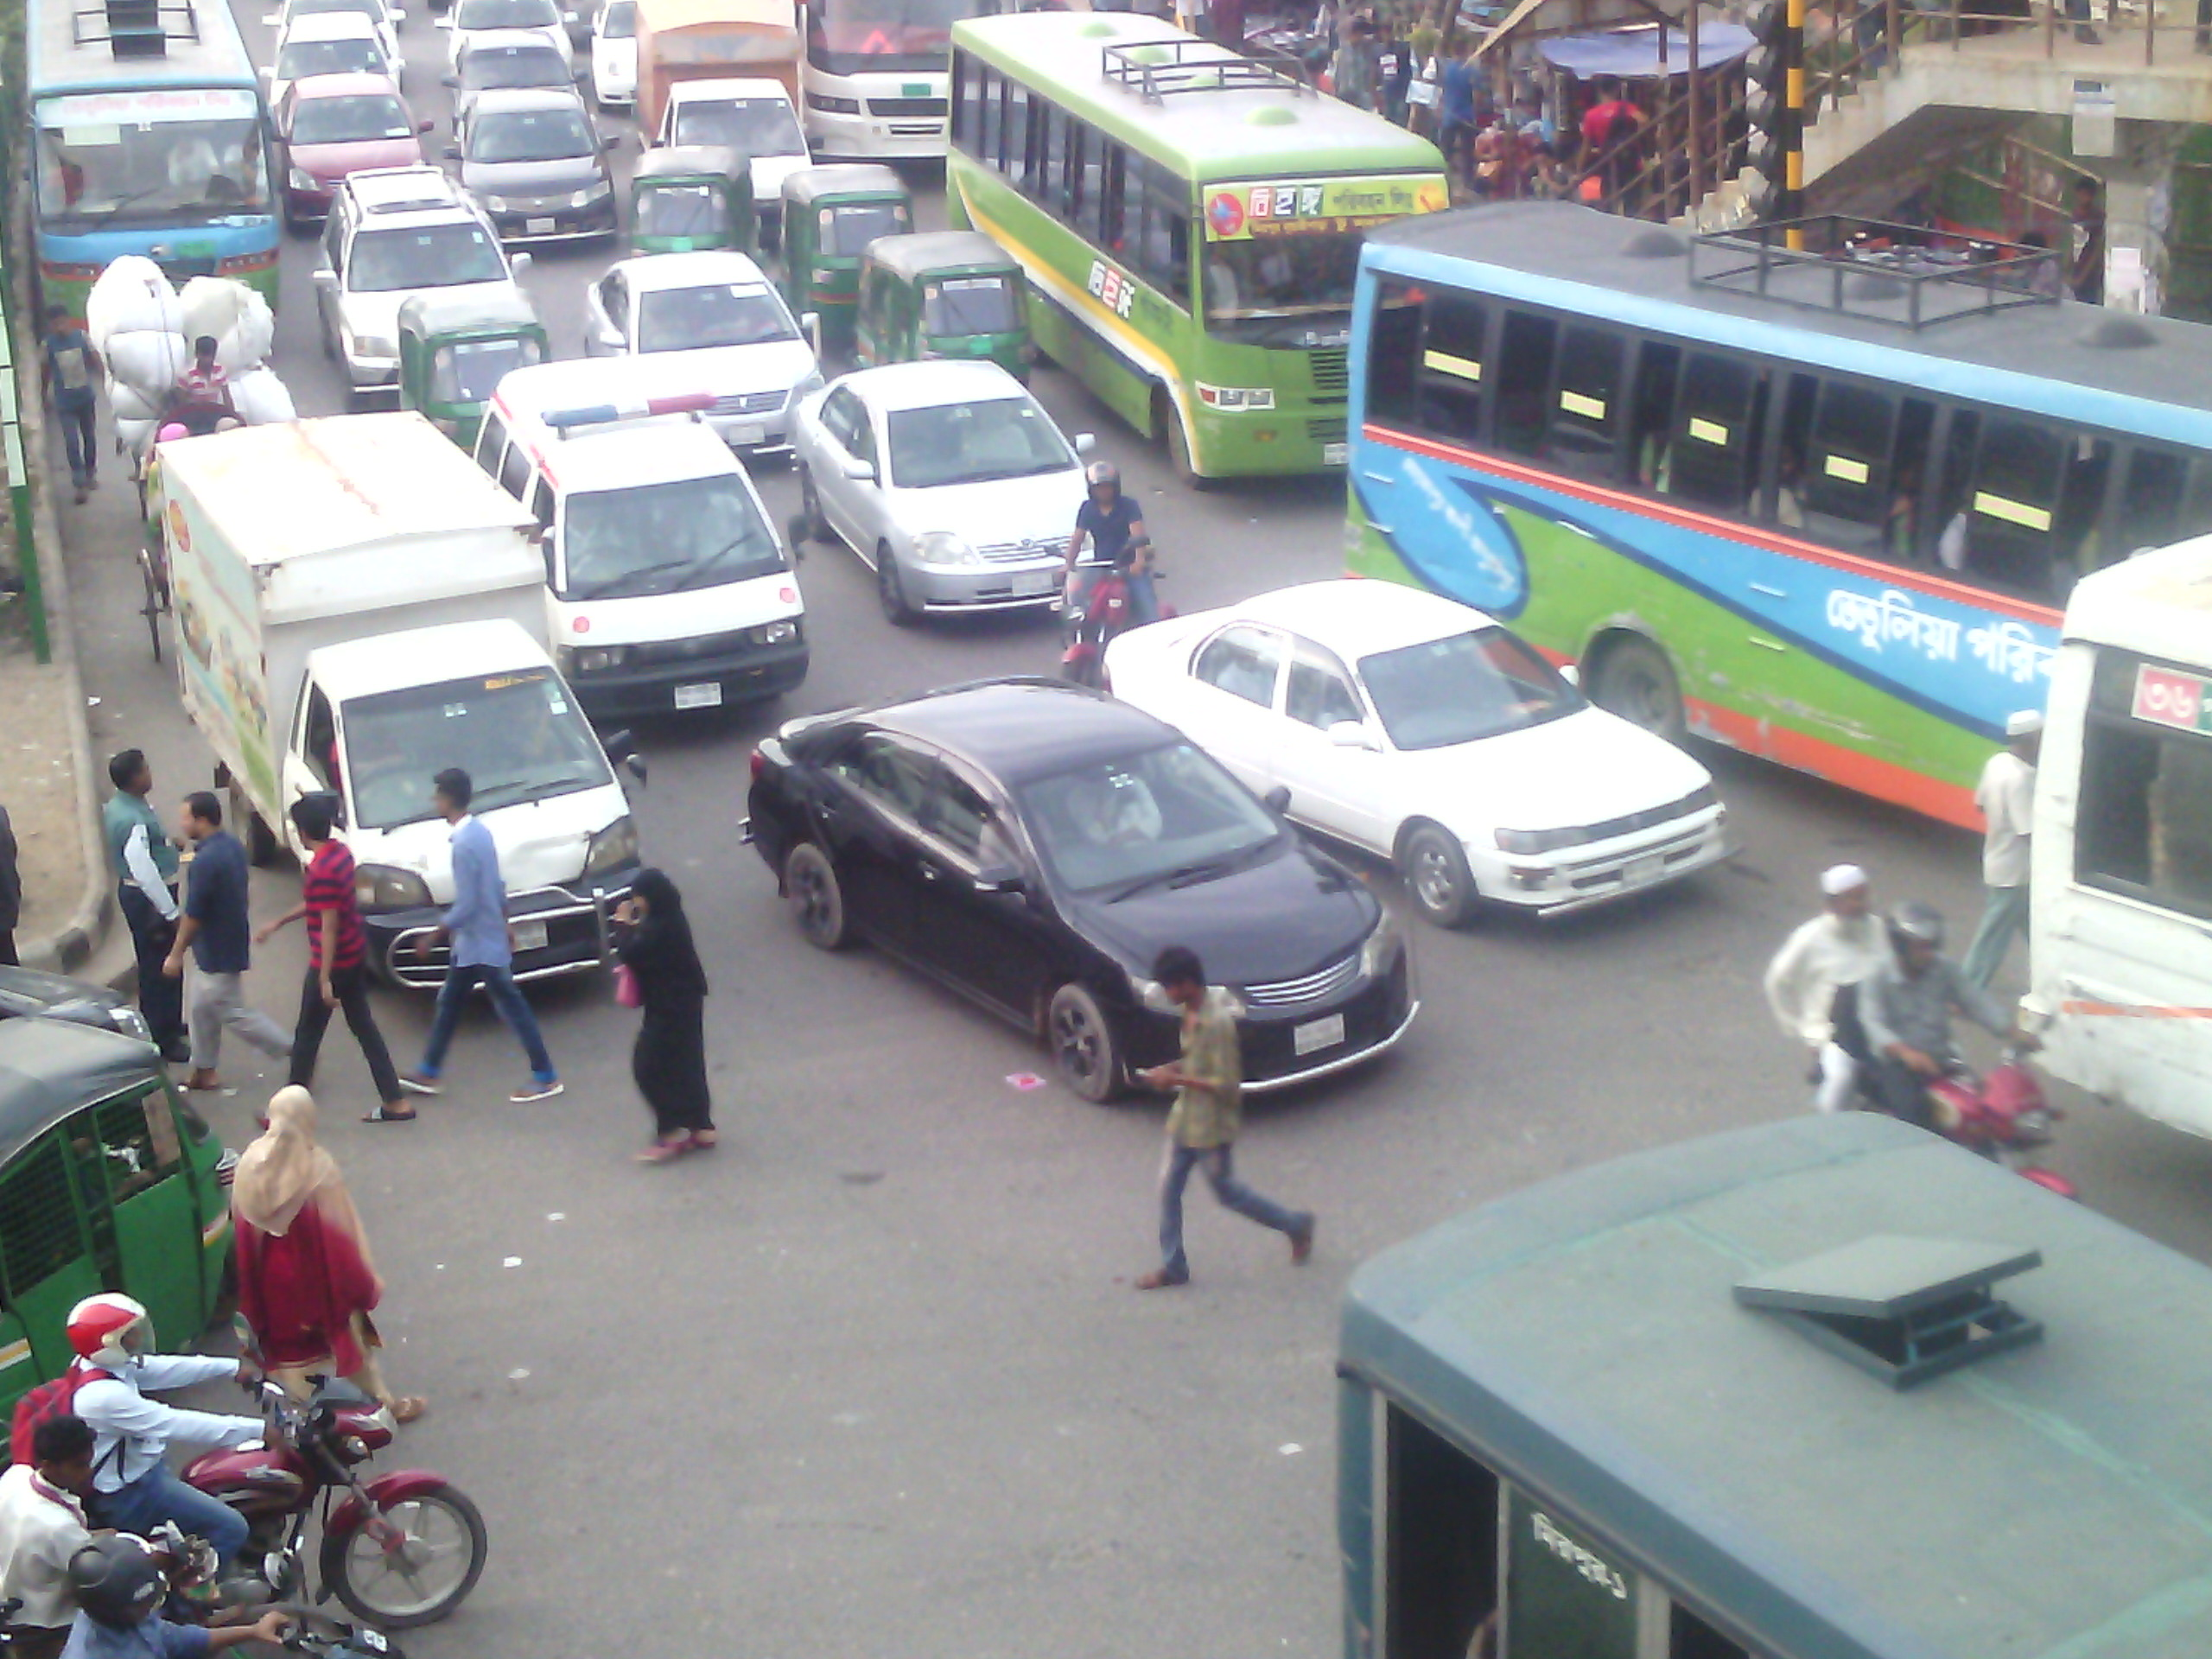 Traffic jams in Dhaka